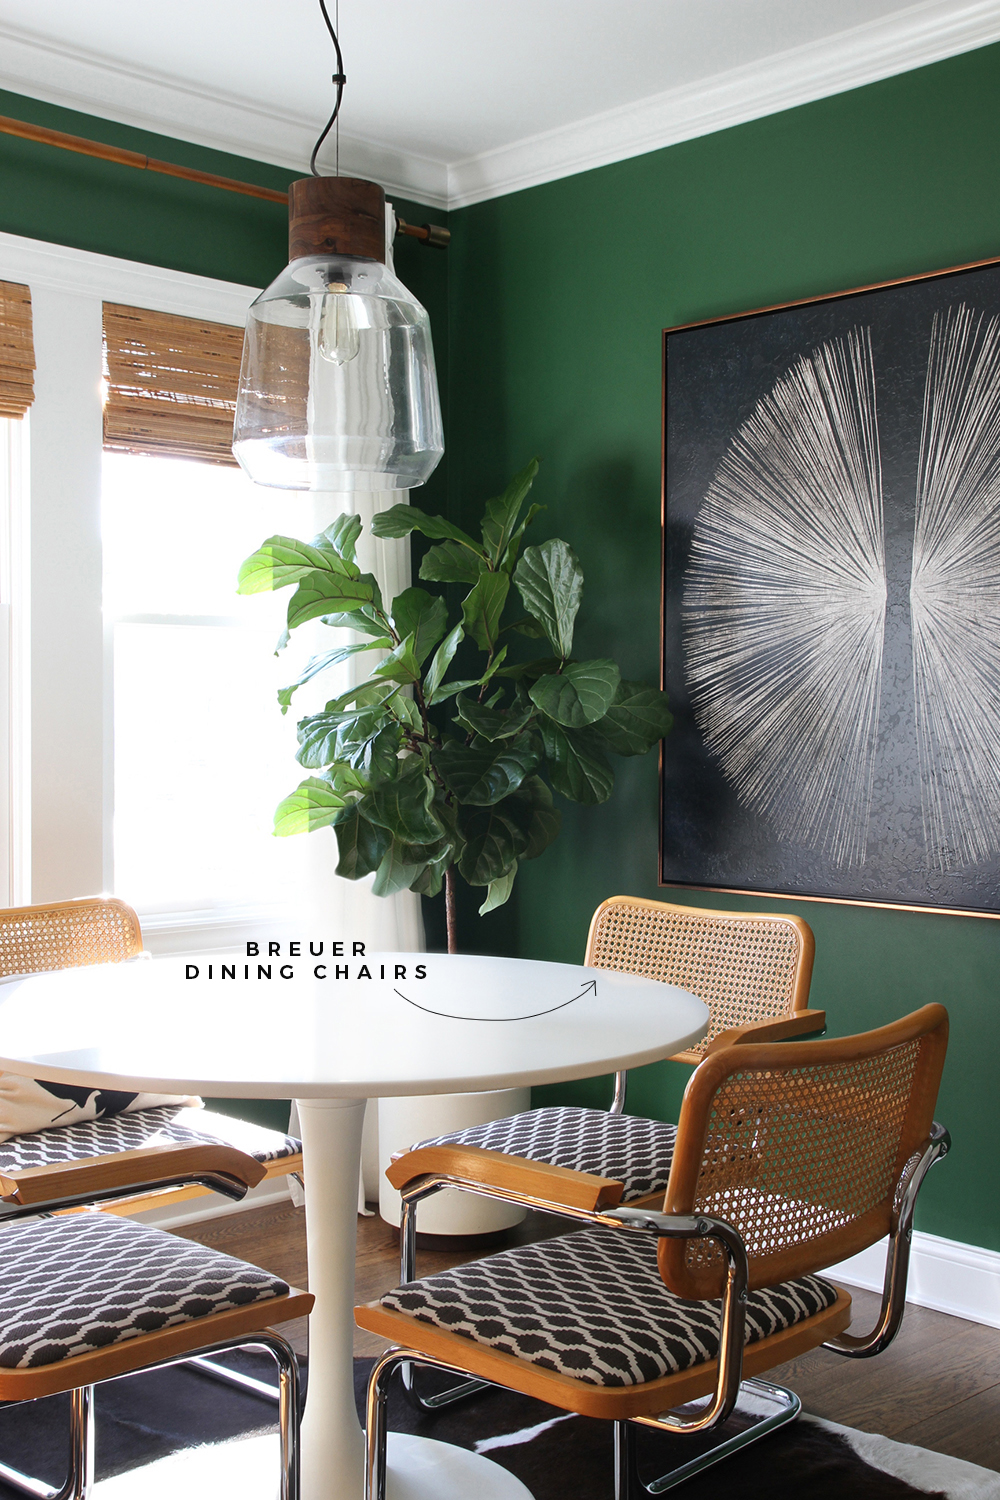 Marvelous Vintage Breuer Dining Chairs And How To Score Cool Vintage Pdpeps Interior Chair Design Pdpepsorg